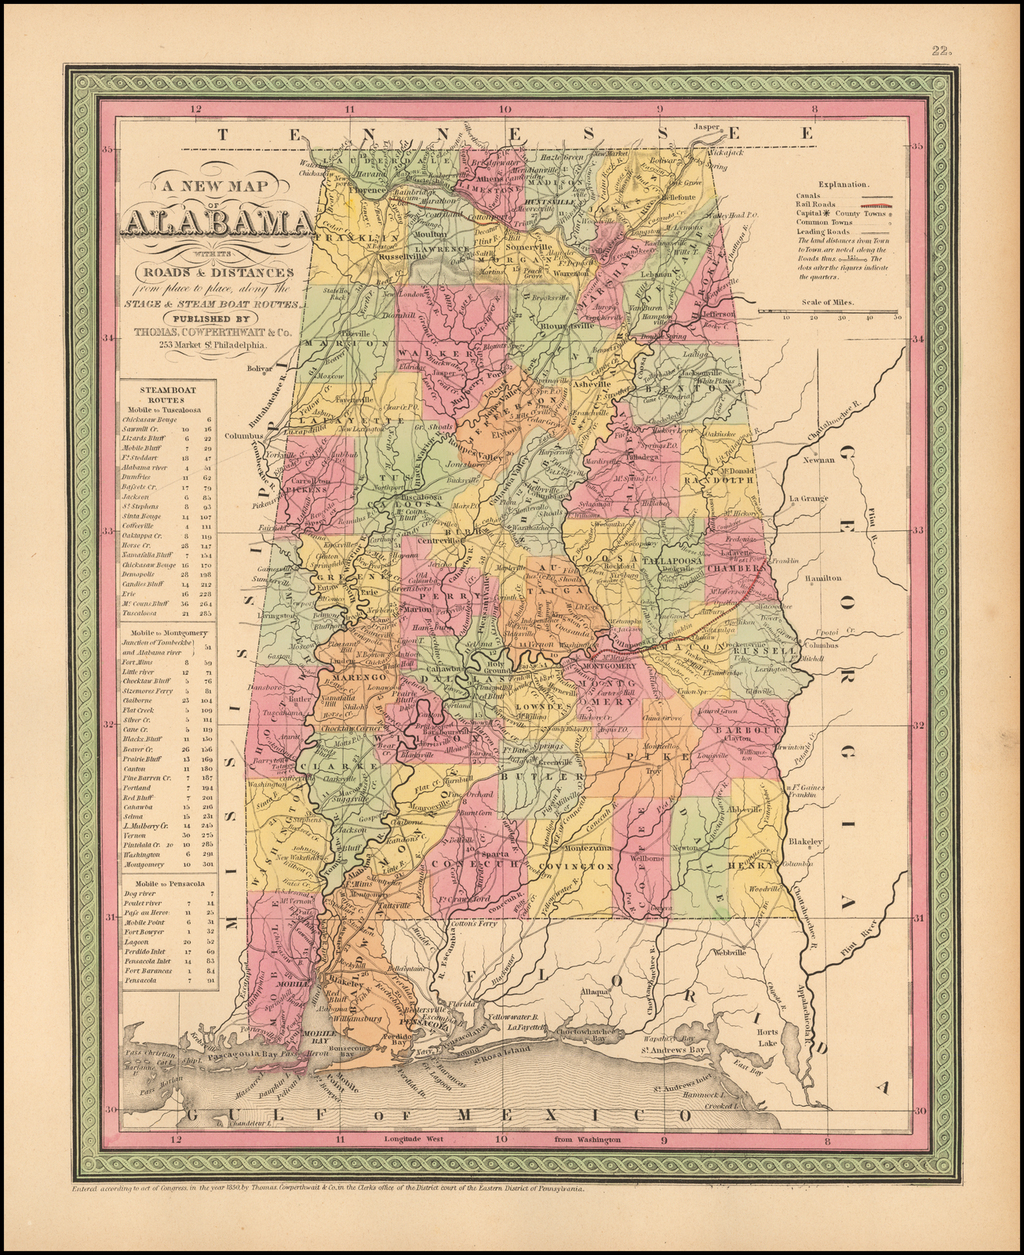 A New Map Of Alabama with its Canals, Roads, Distances from Place to Place, along the Stage & Steam Boat Routes… By Thomas, Cowperthwait & Co.